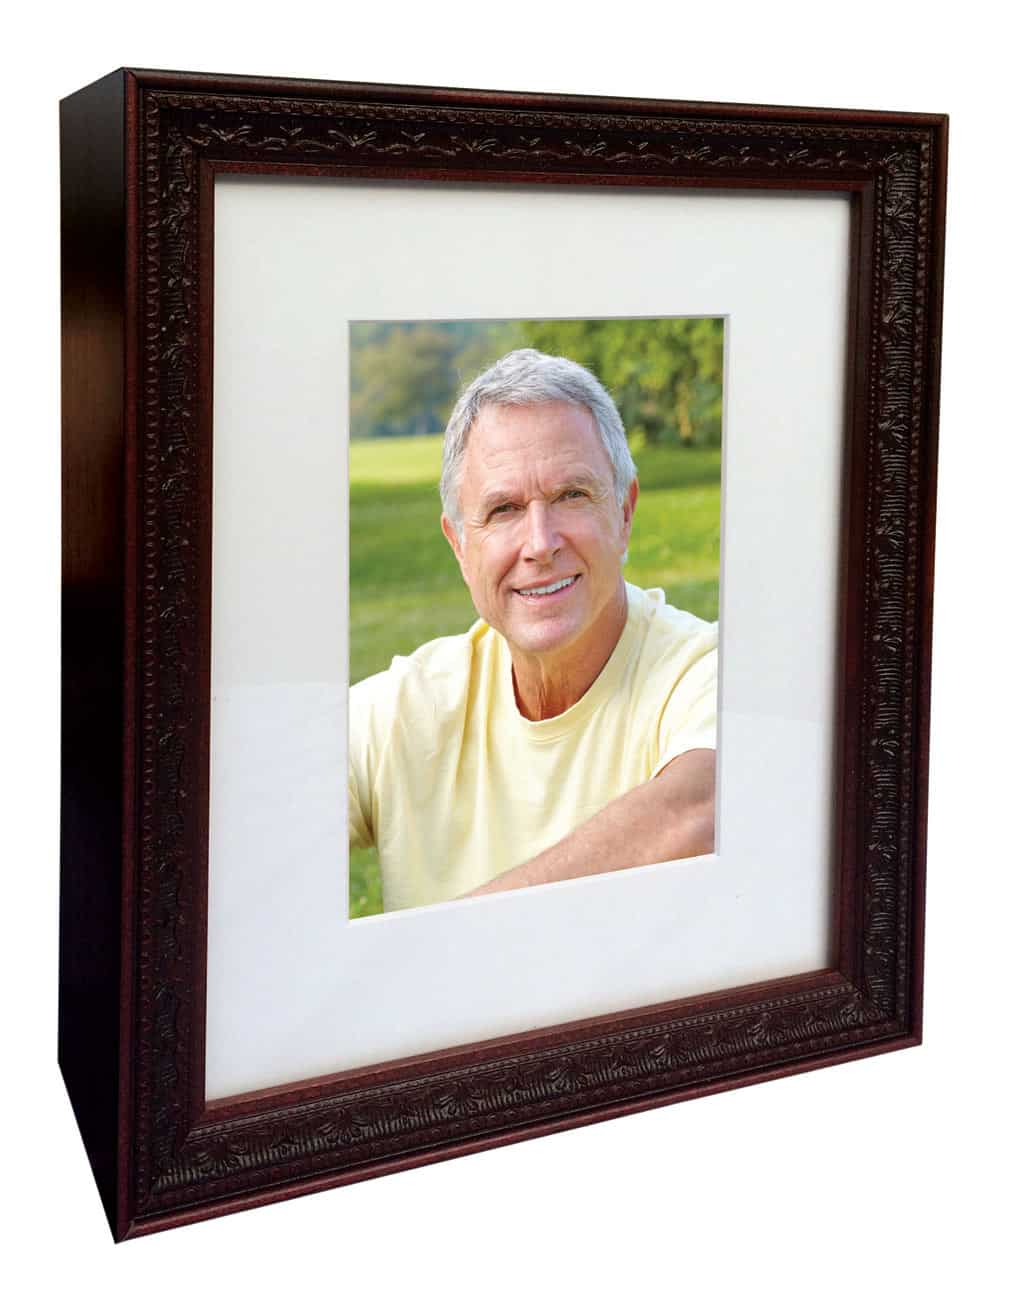 https://goinghomecremations.com/wp-content/uploads/2020/08/affordable-cremation-urn-for-ashes-Legacy-Picture-Frame-Cherry.jpg